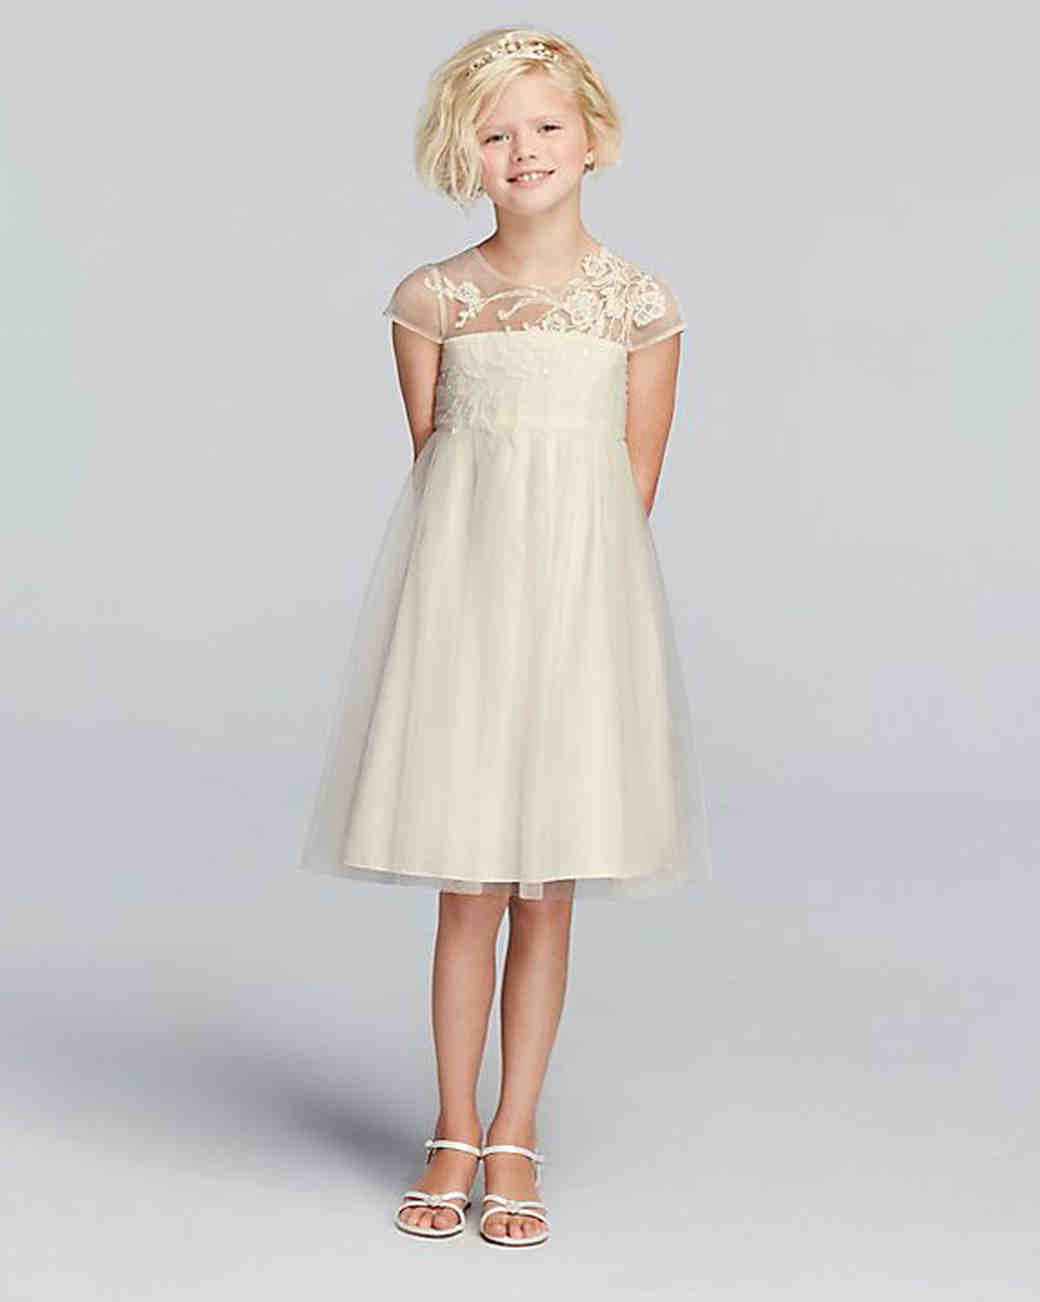 ab59f6cd683 Cute and Comfortable Short-Sleeve Flower Girl Dresses